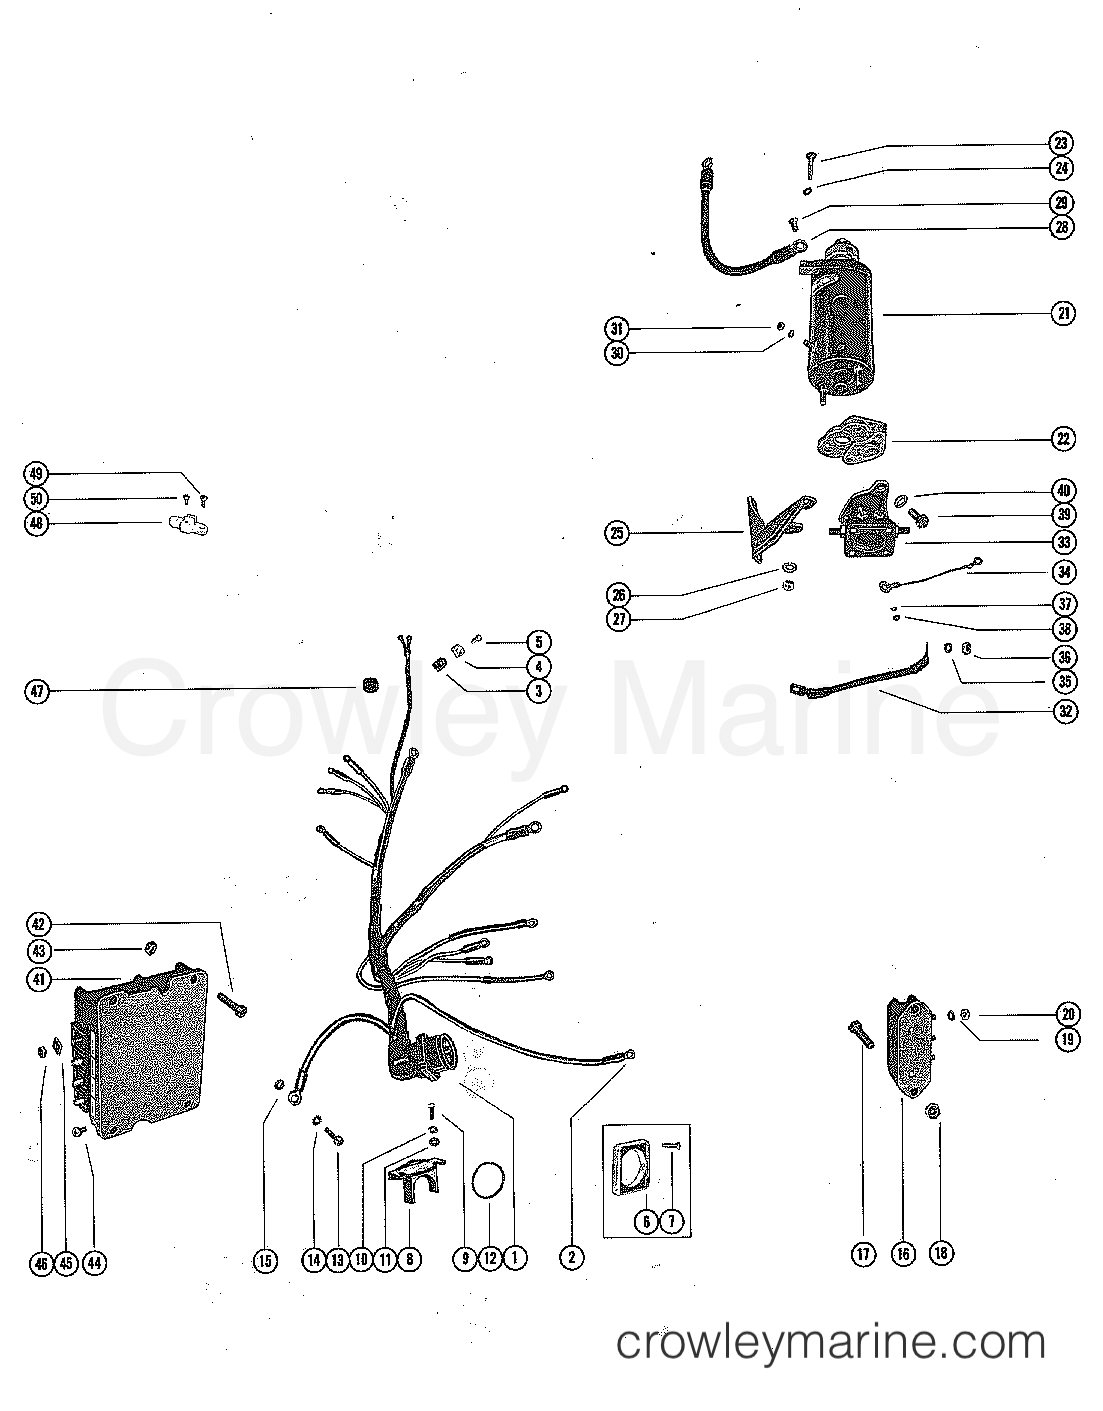 175 Mercury Ignition Switch Wiring Diagram. Mercury. Auto